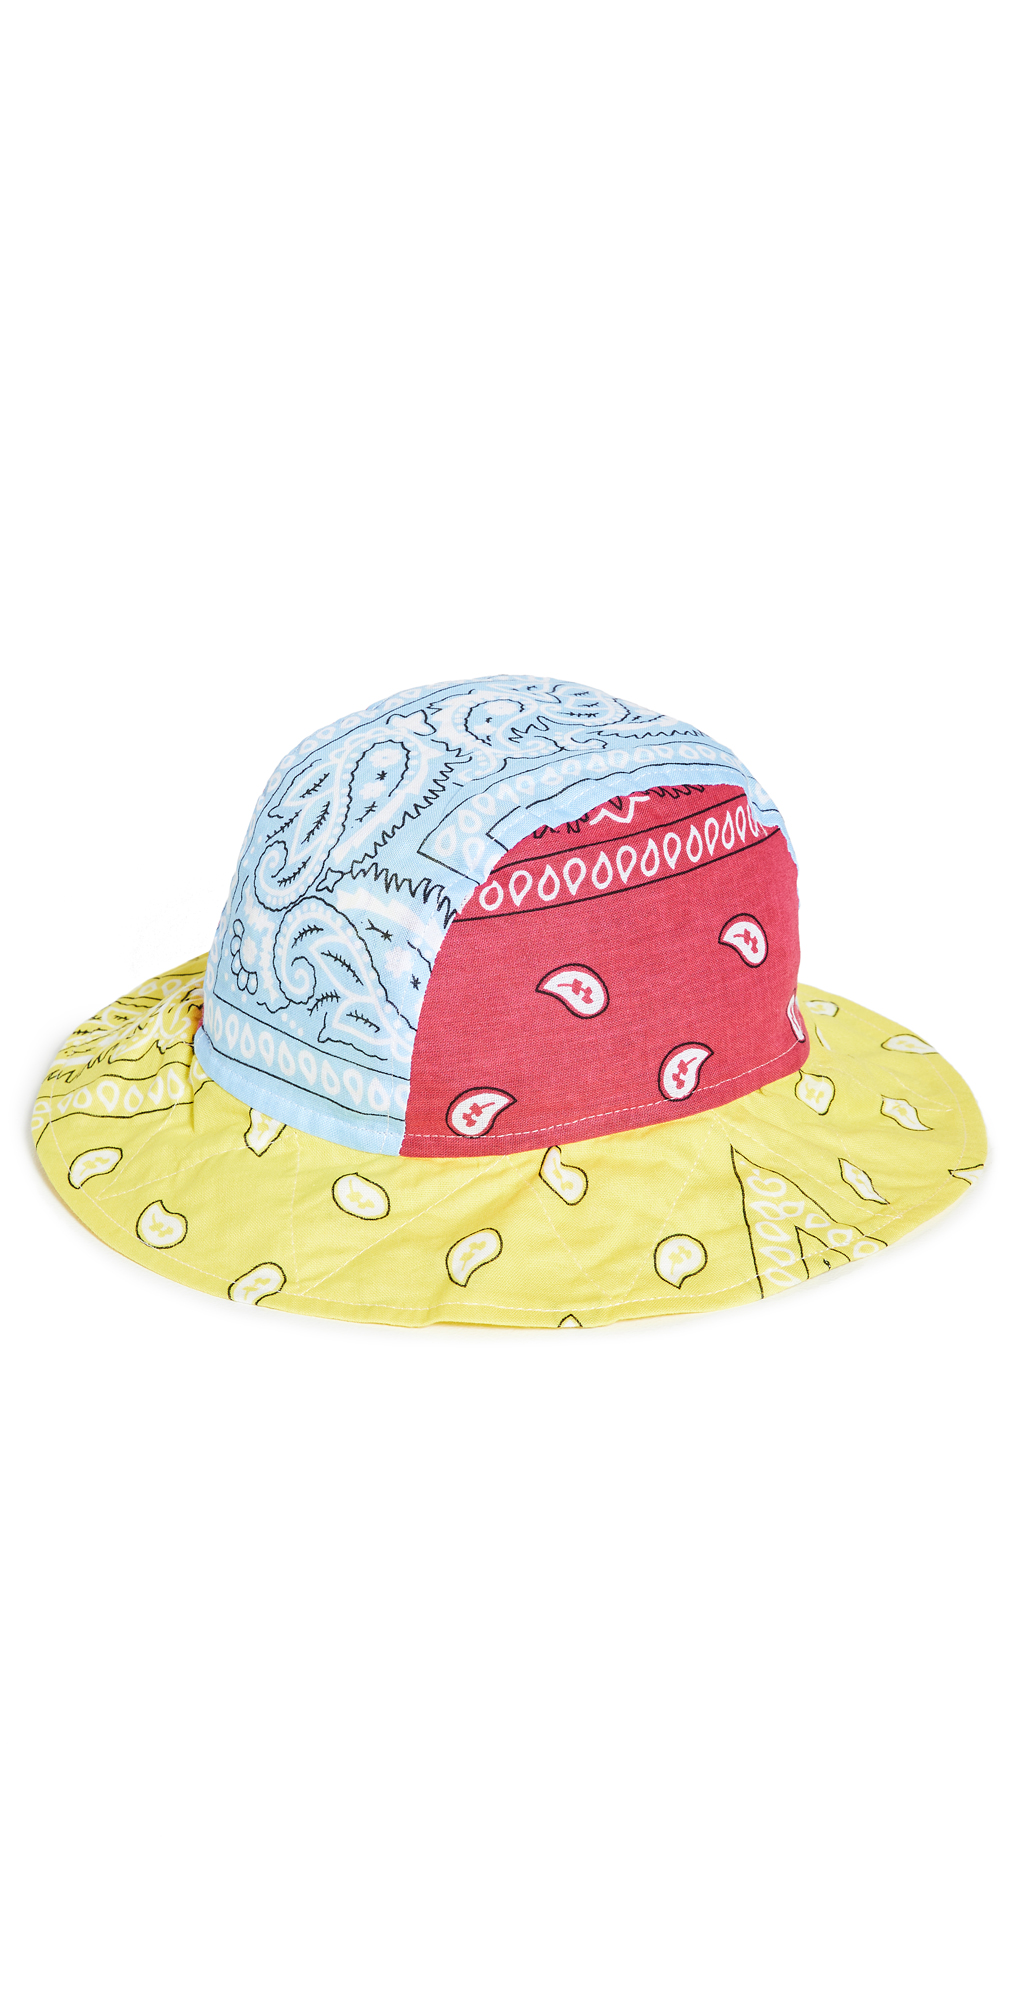 Arizona Love Bandana Bob Mix Bucket Hat